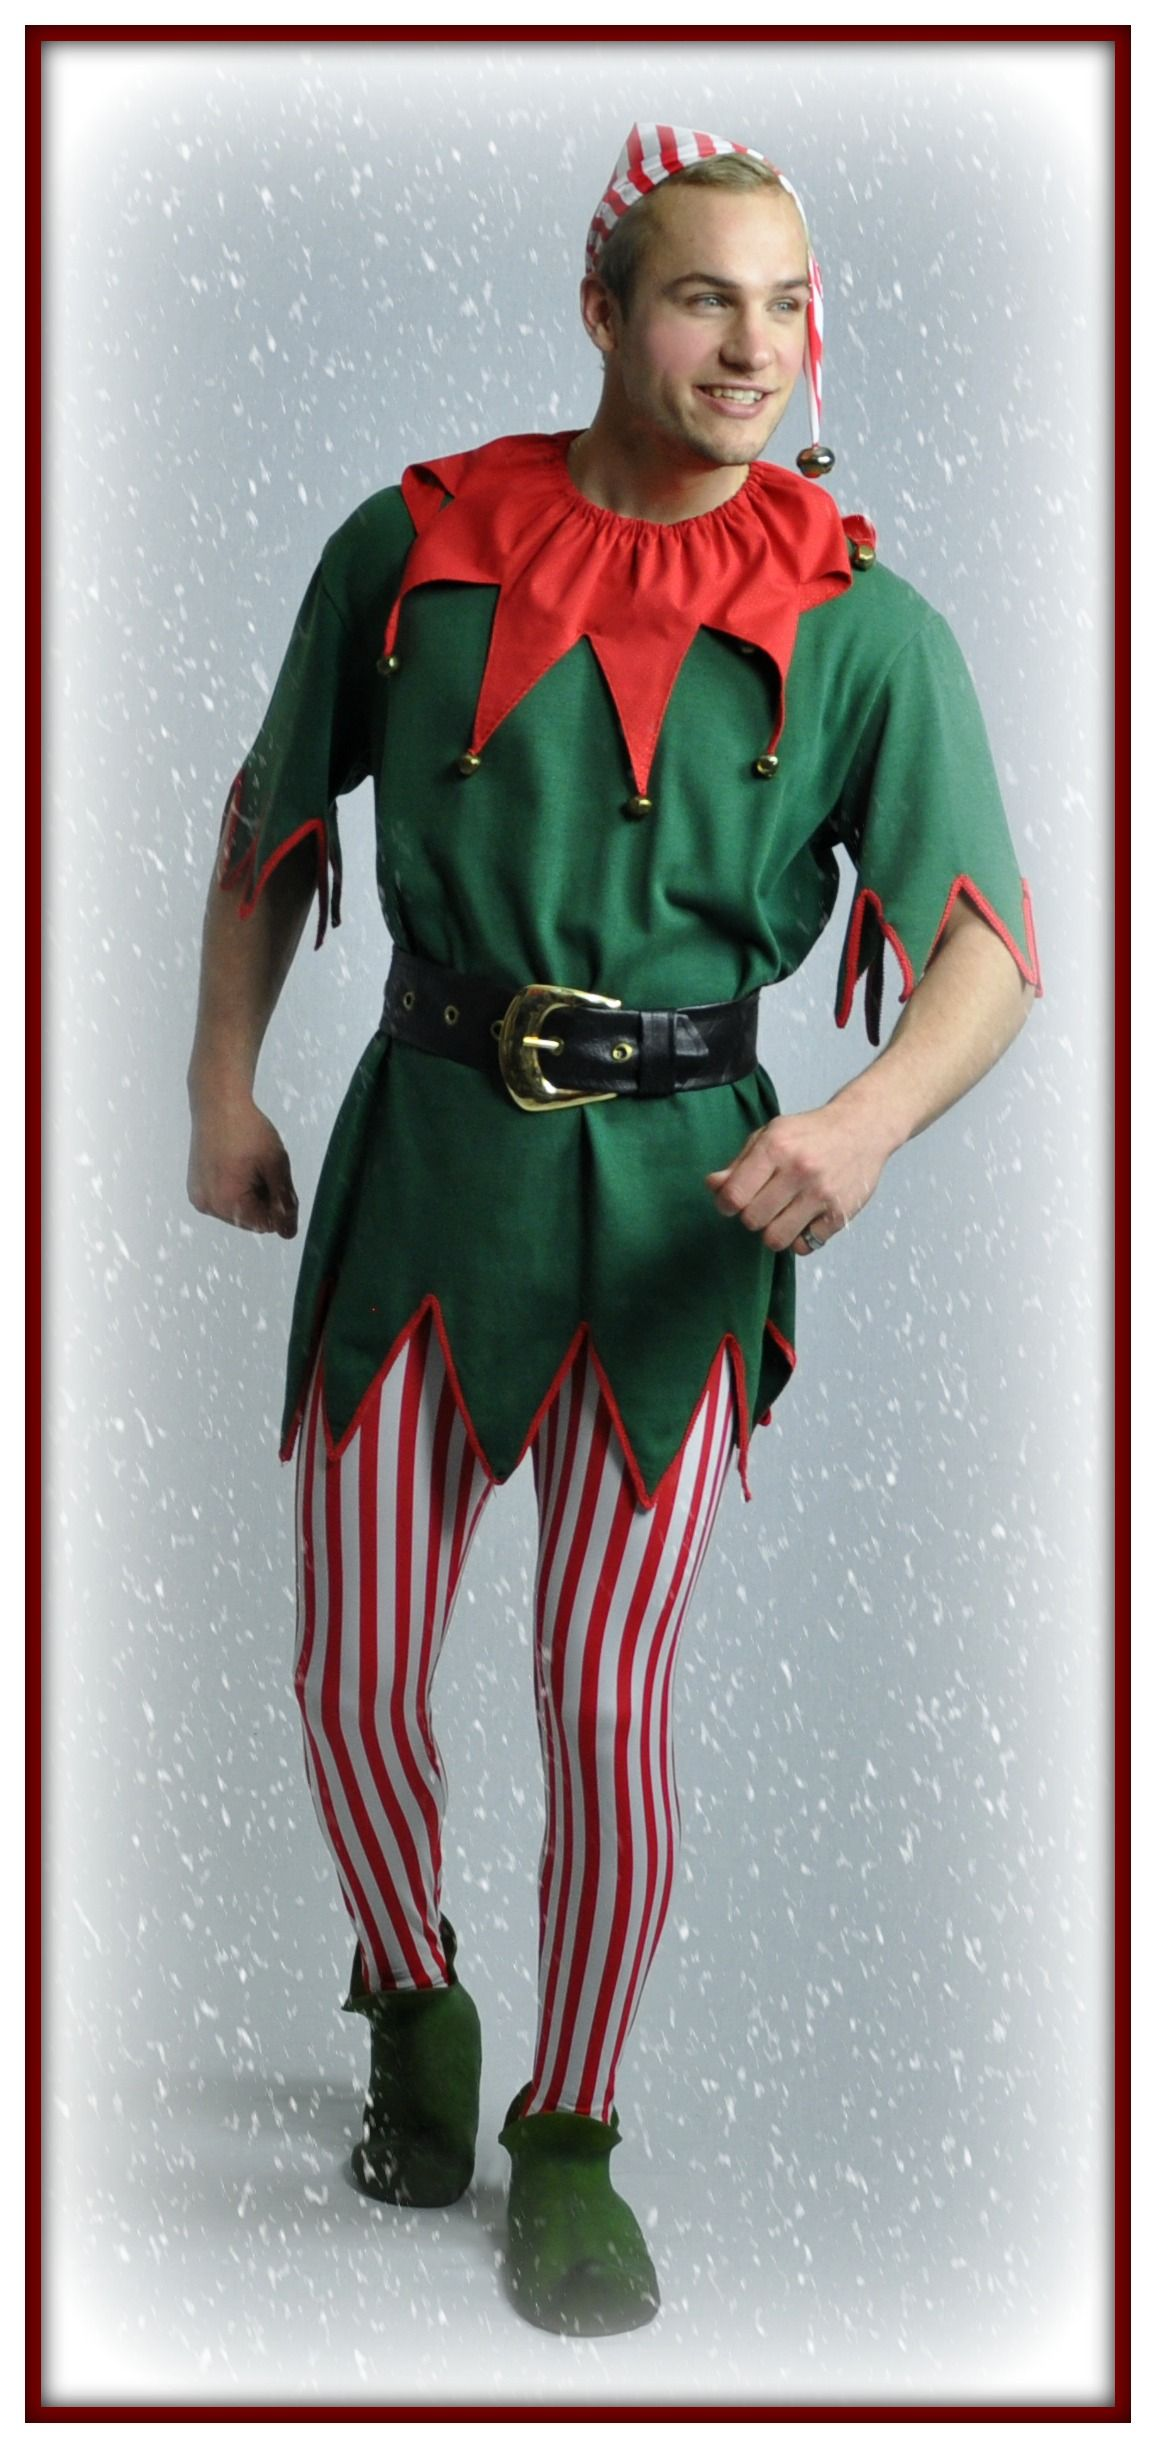 Very Cute Santa S Elf Elf Costume To Hire From The Costume Shop Melbourne Christmas Elf Costume Christmas Elf Costume Diy Diy Christmas Costumes